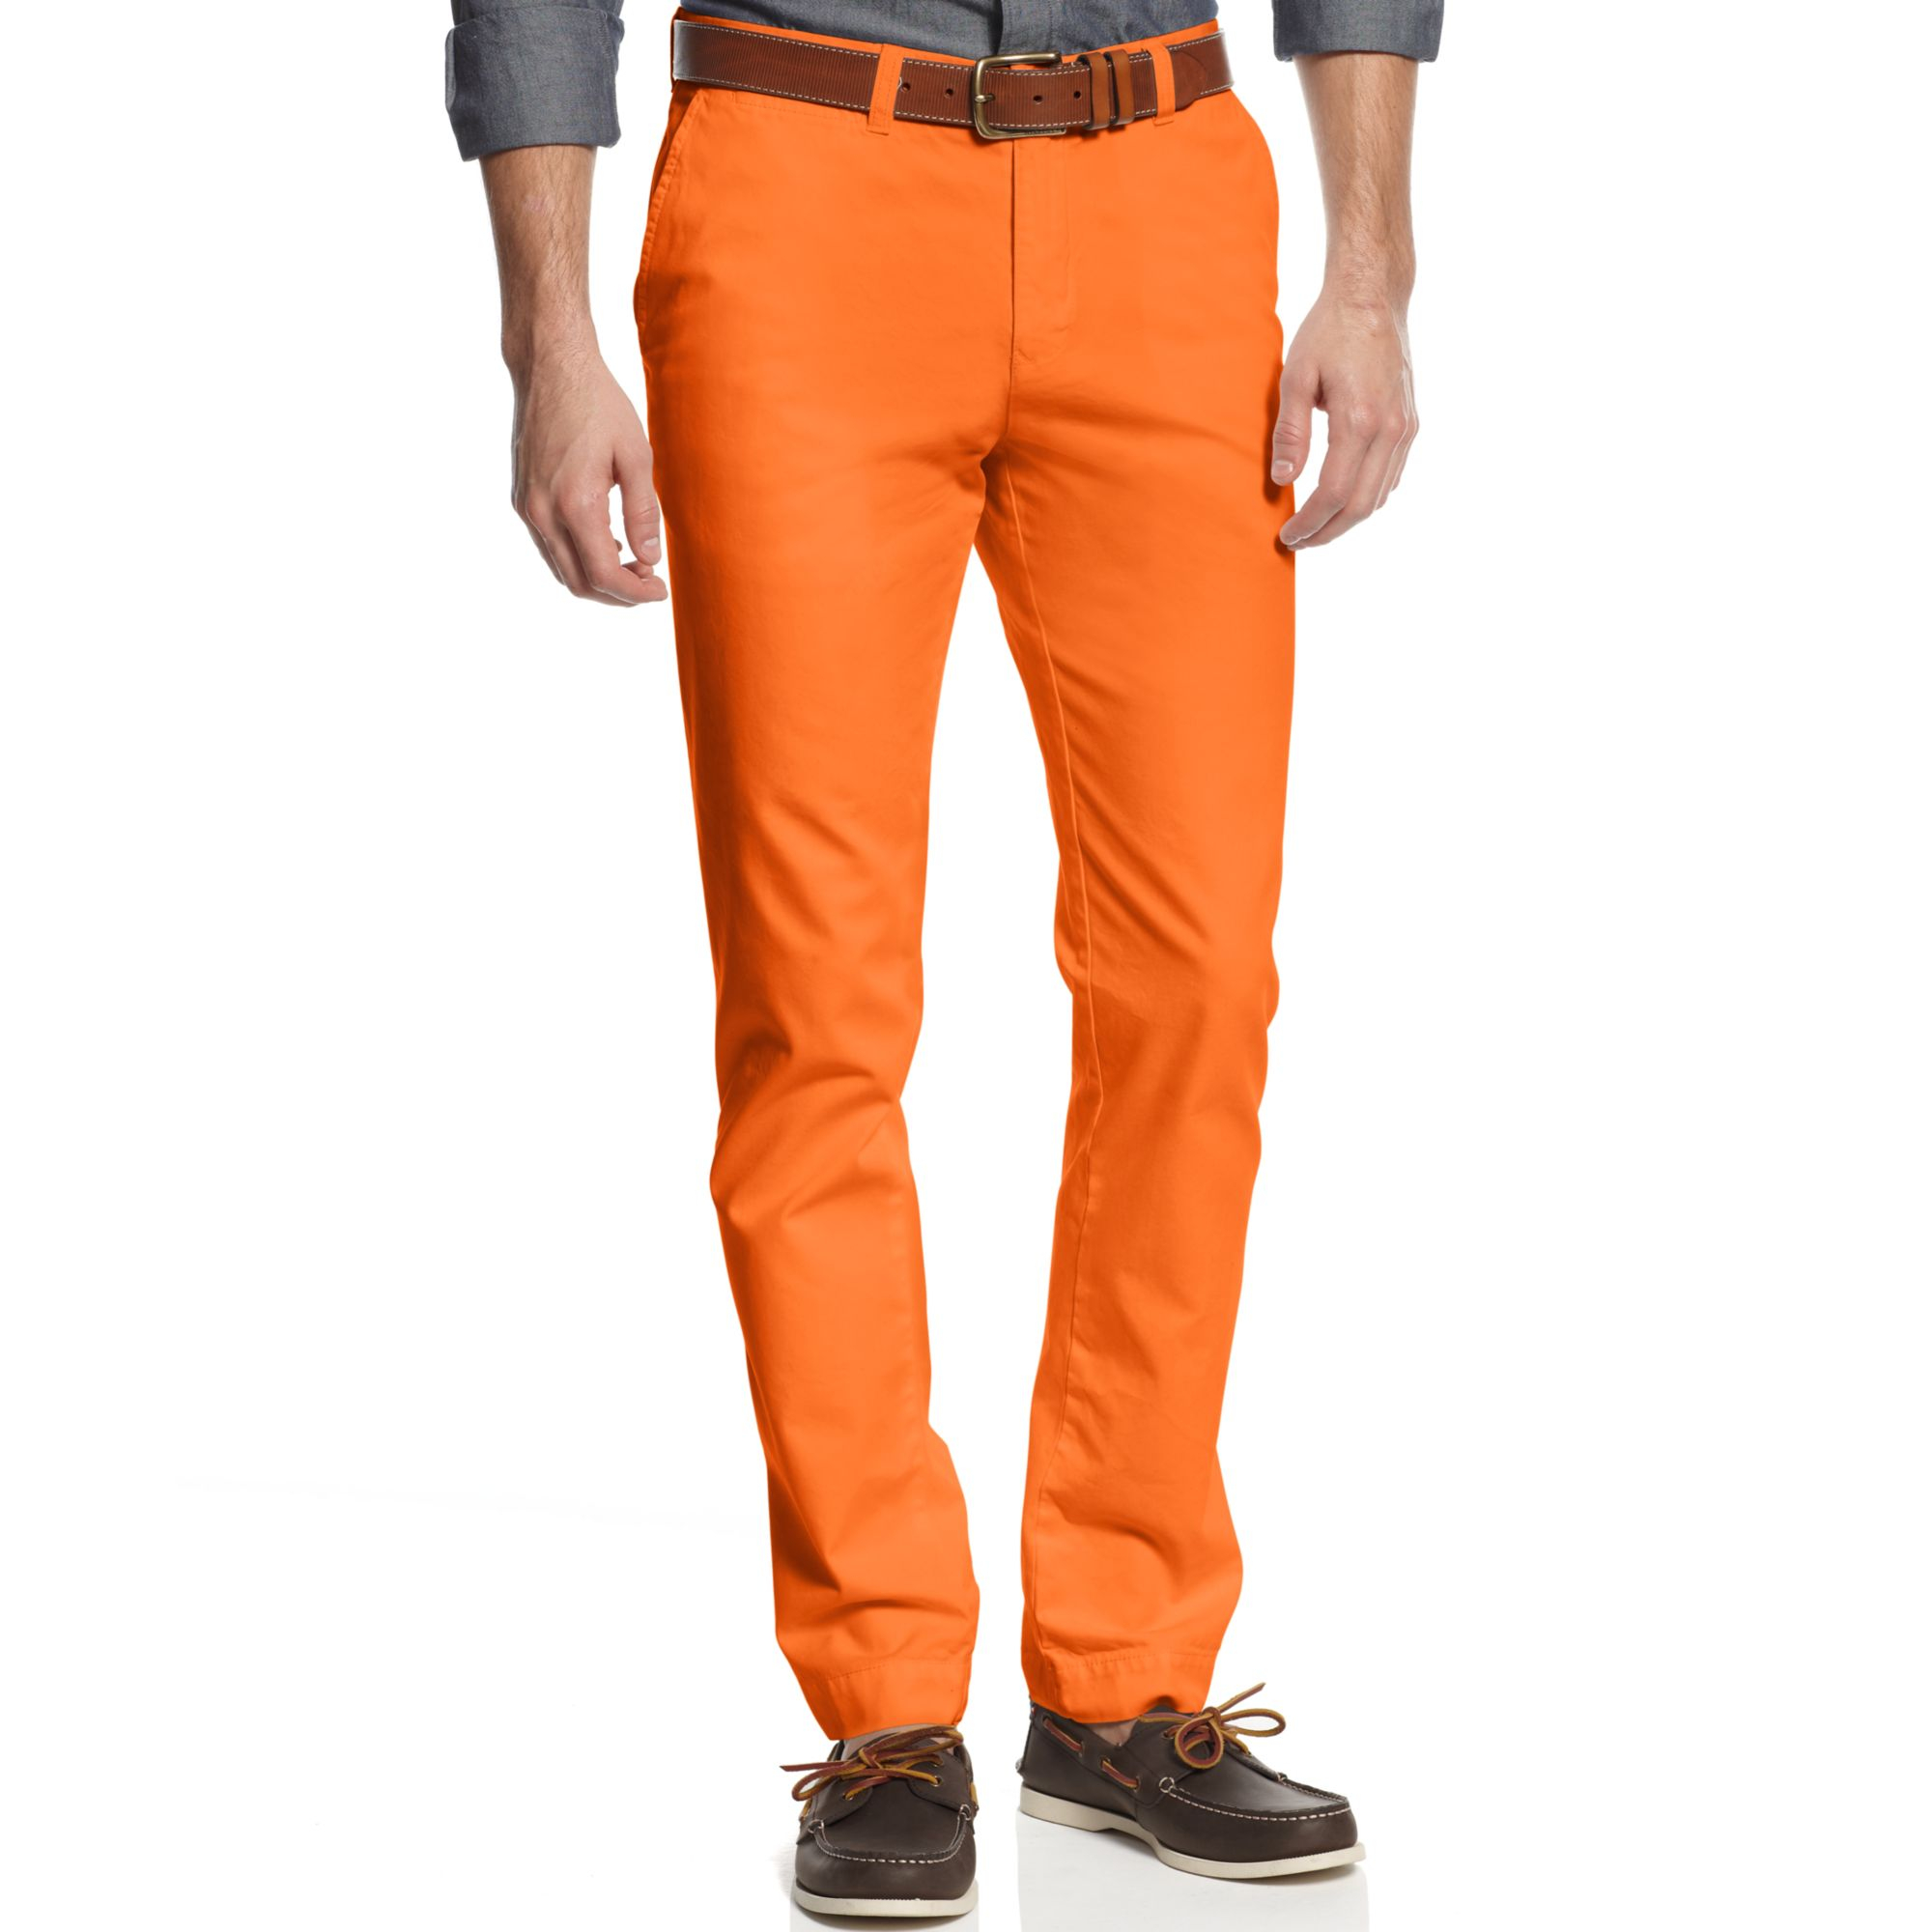 e2978620b Tommy Hilfiger Slim Fit Graduate Chino Pants in Orange for Men - Lyst